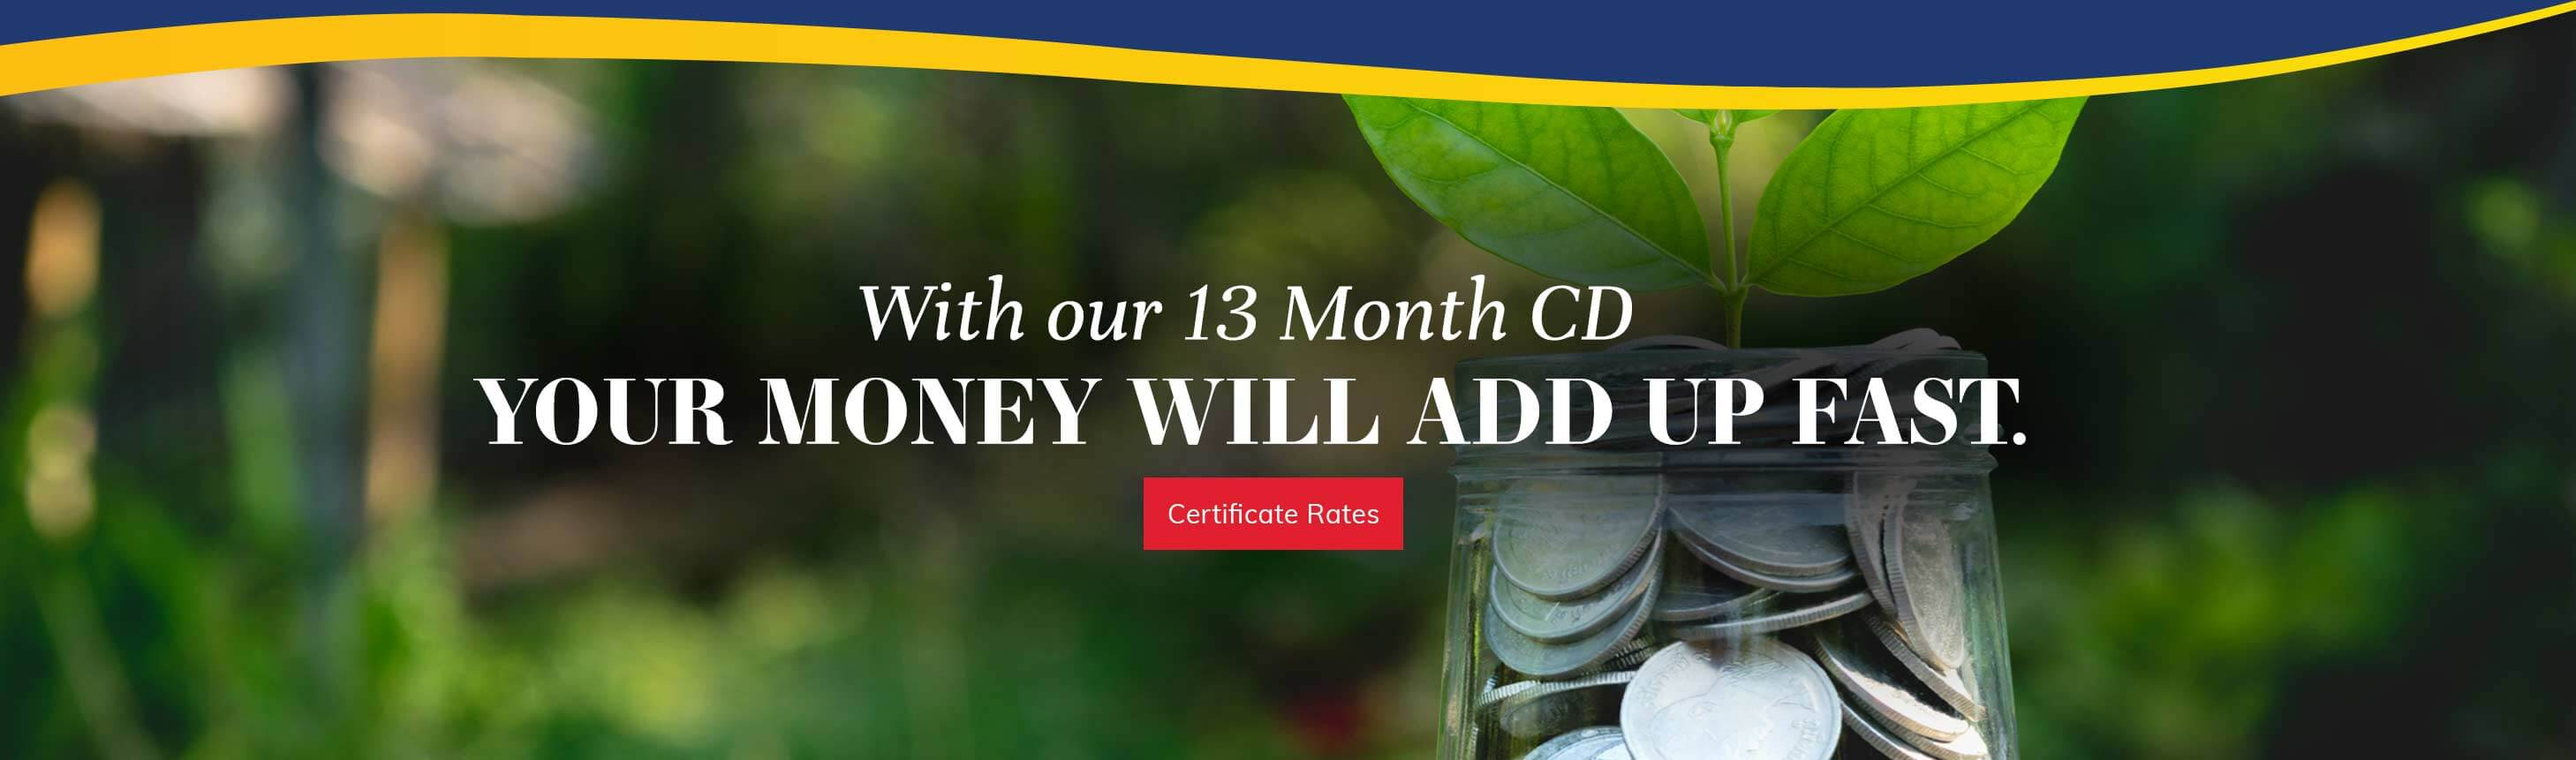 With our 13 month cd your money will add up fast. Certificate Details.